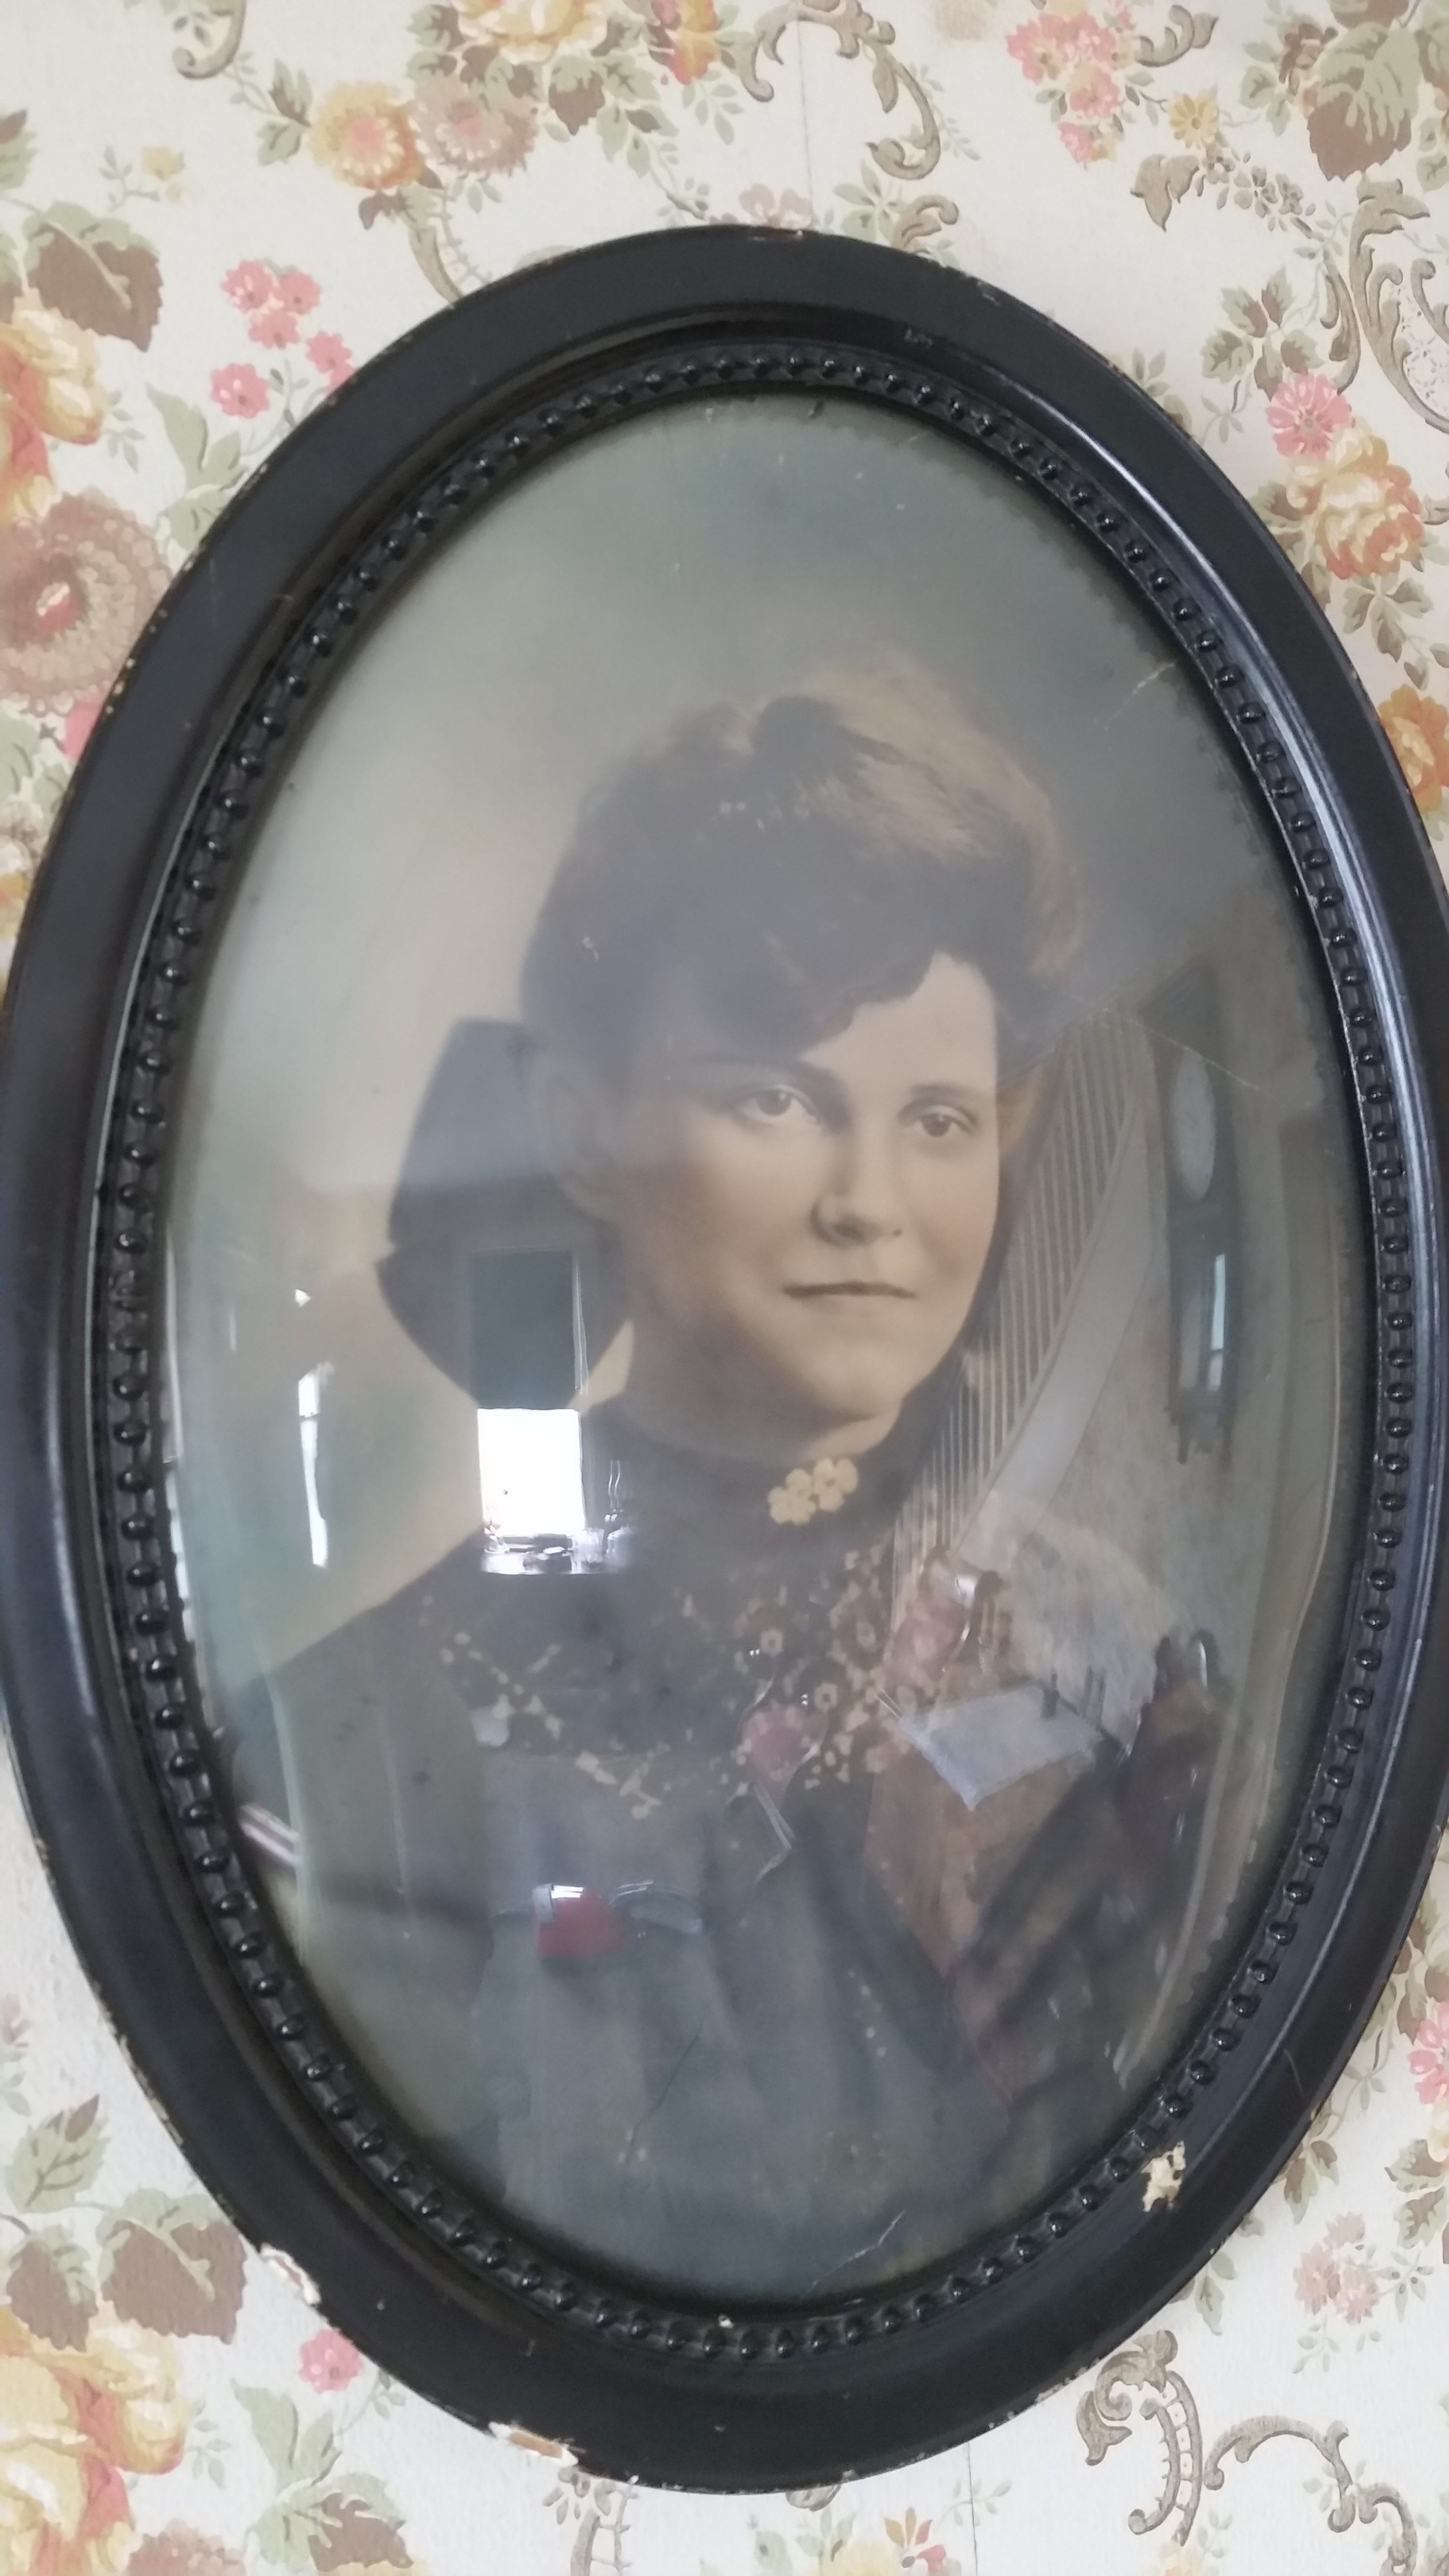 old-timey portrait photo of young woman